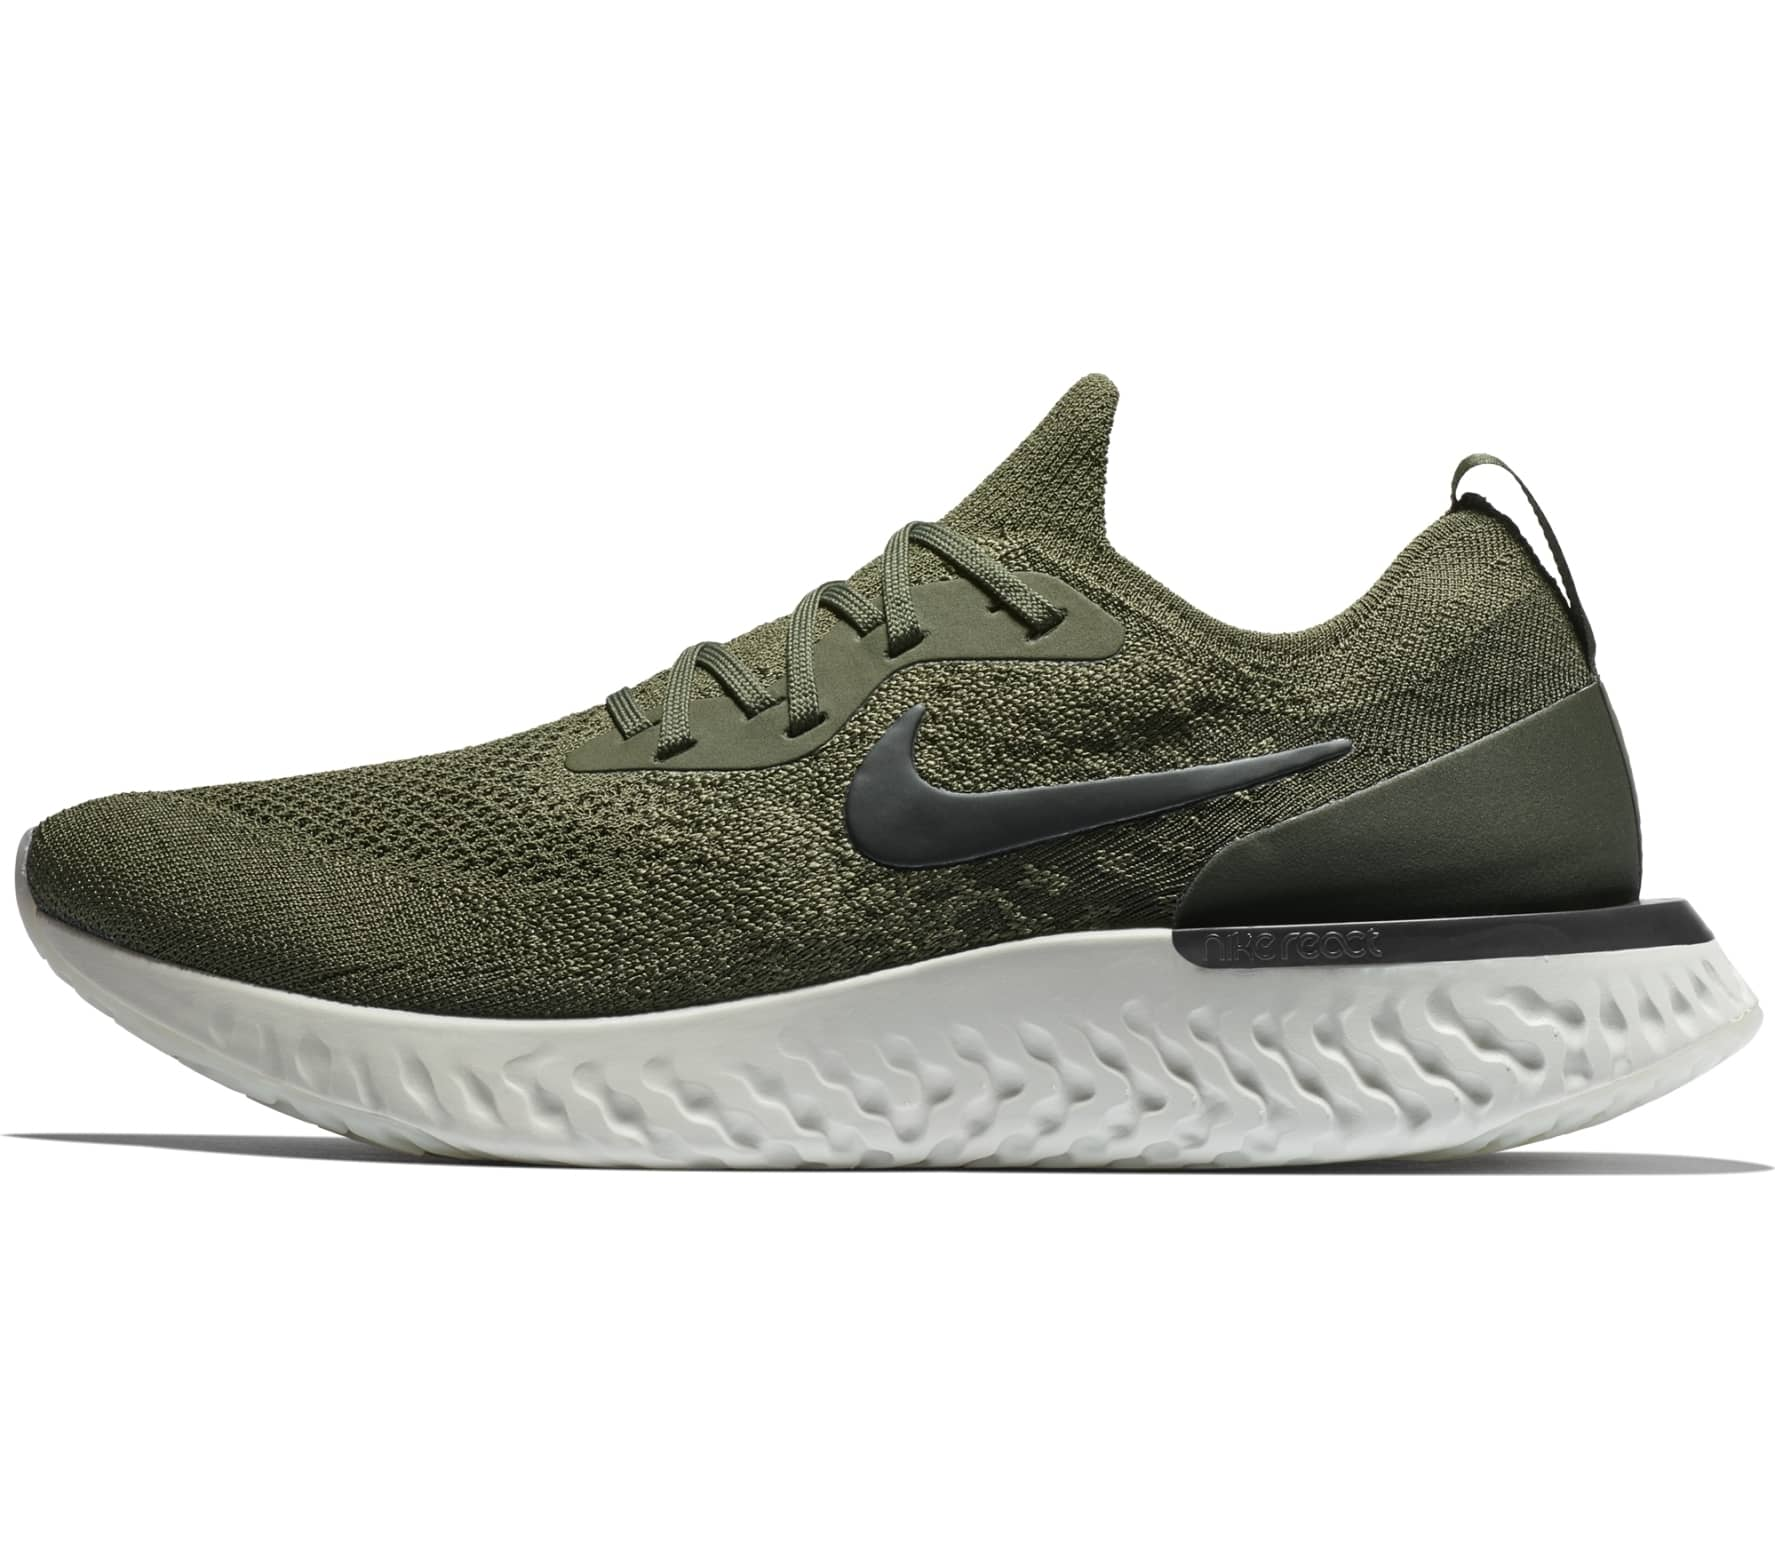 2589a13024f5f Nike - Epic React Flyknit men s running shoes (matcha) - buy it at ...